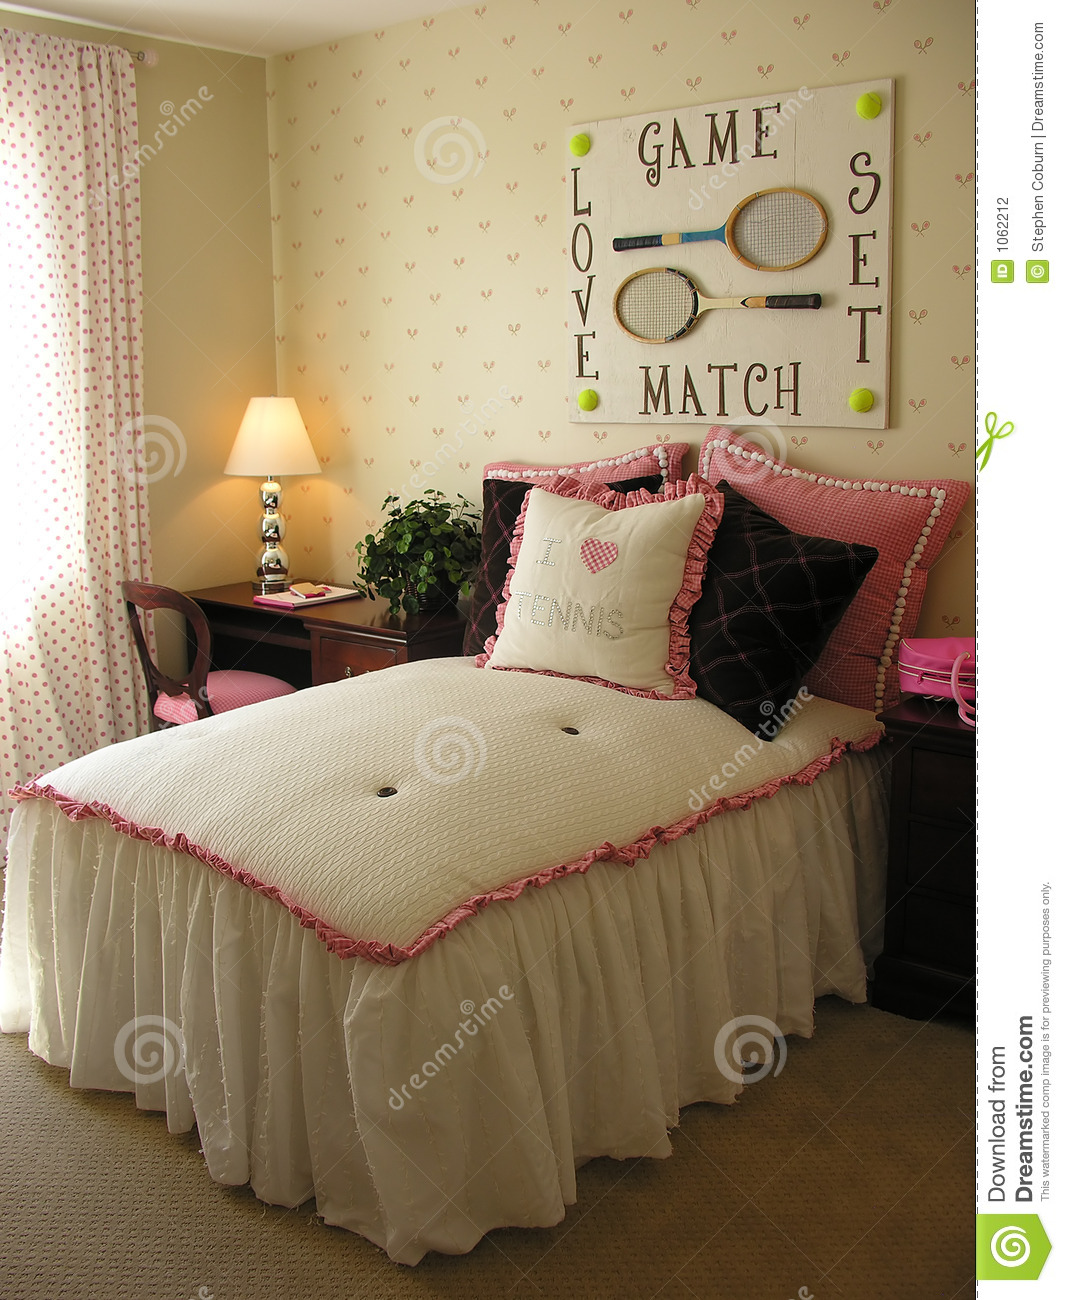 Tennis Themed Bedroom Stock Photography  Image 1062212